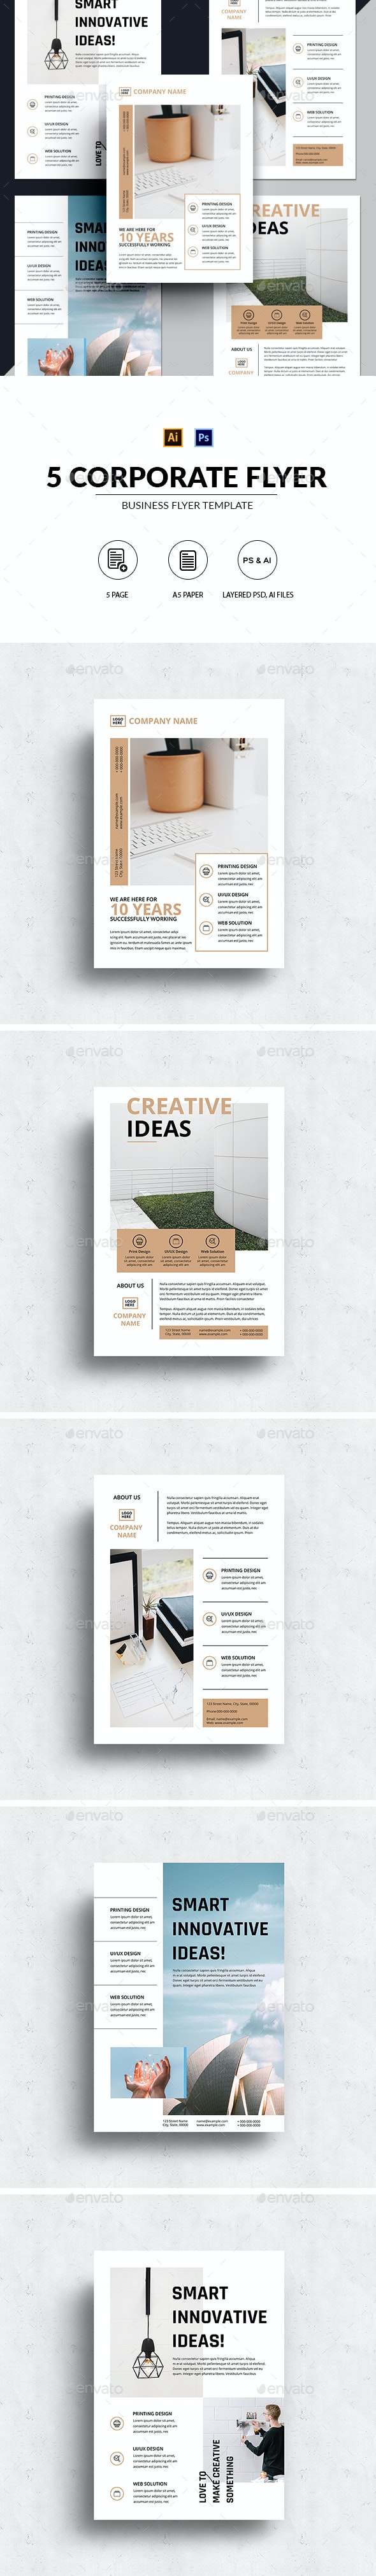 5 Minimalist Corporate Flyer Template - Corporate Flyers